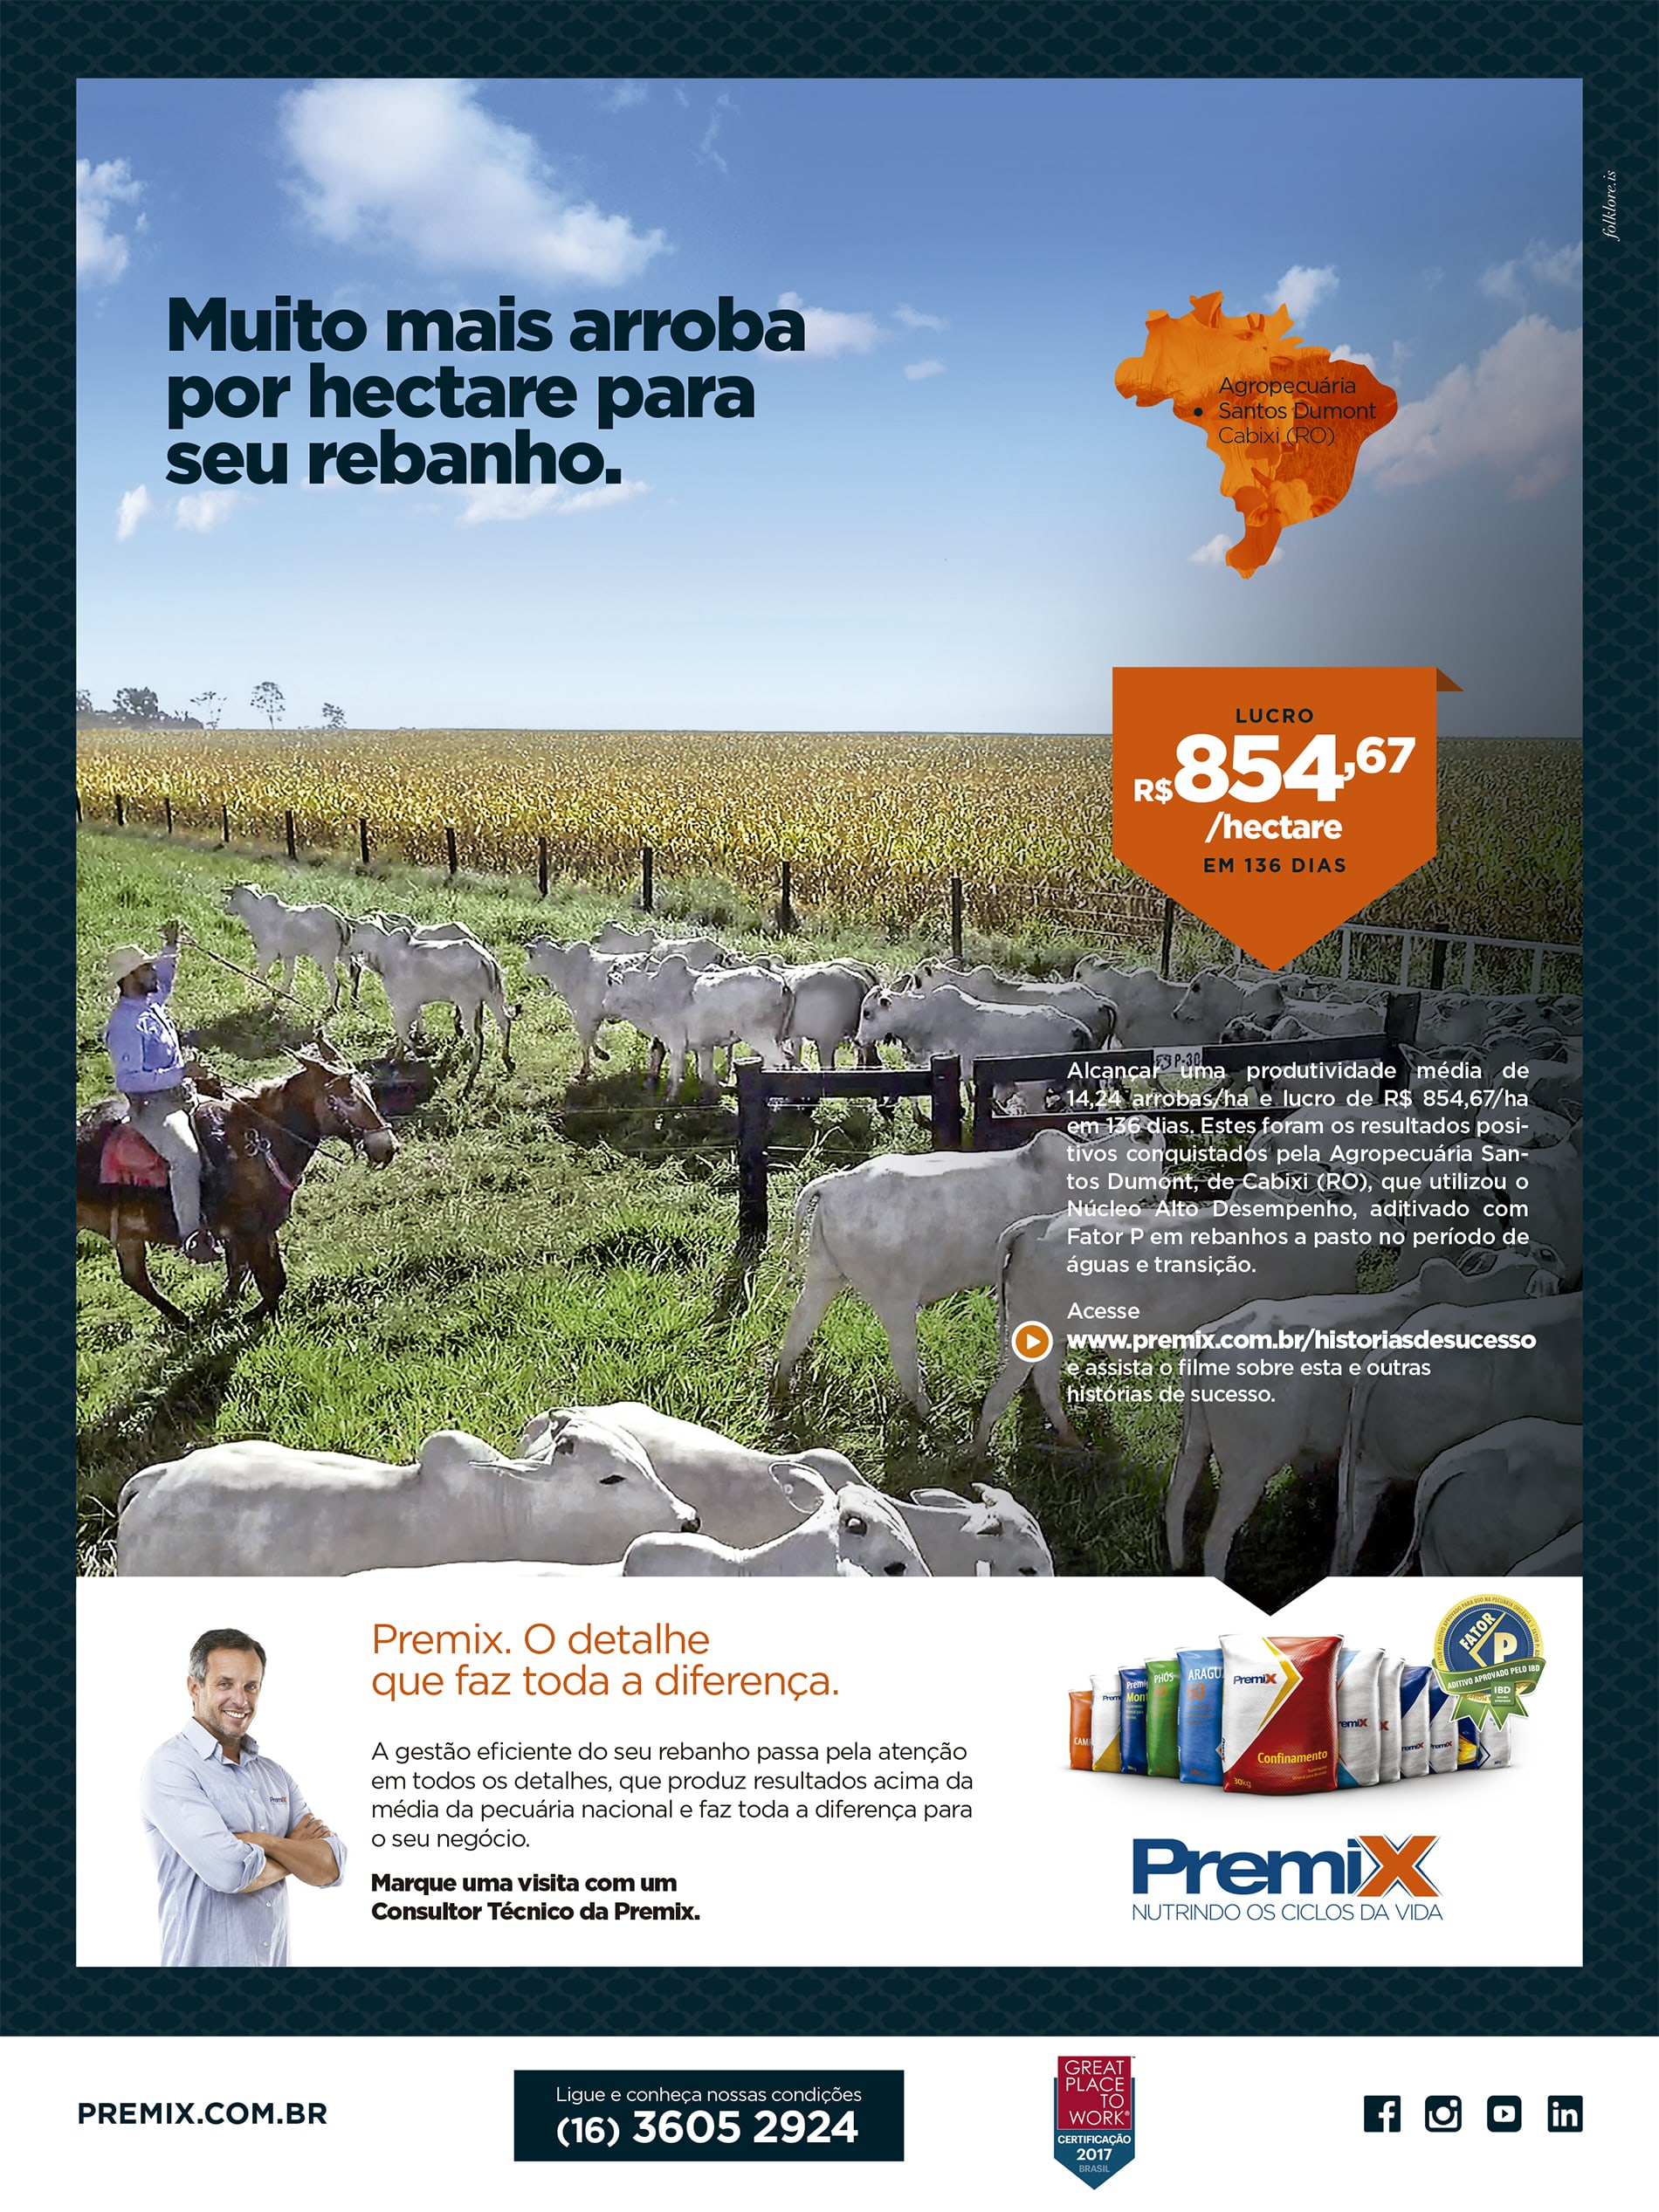 PMX0328_Comunicacao2017_Revista_Feed&Food_Nov17_21x28